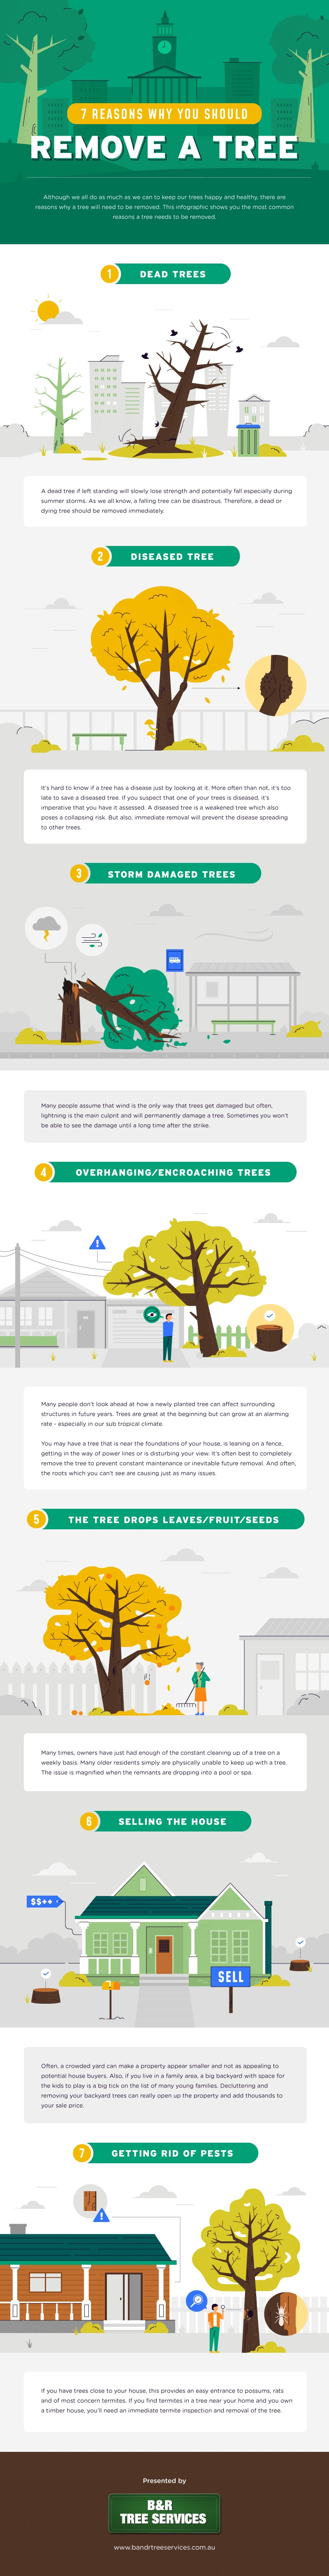 7 Reasons Why You Should Remove a Tree by B&R Tree Services